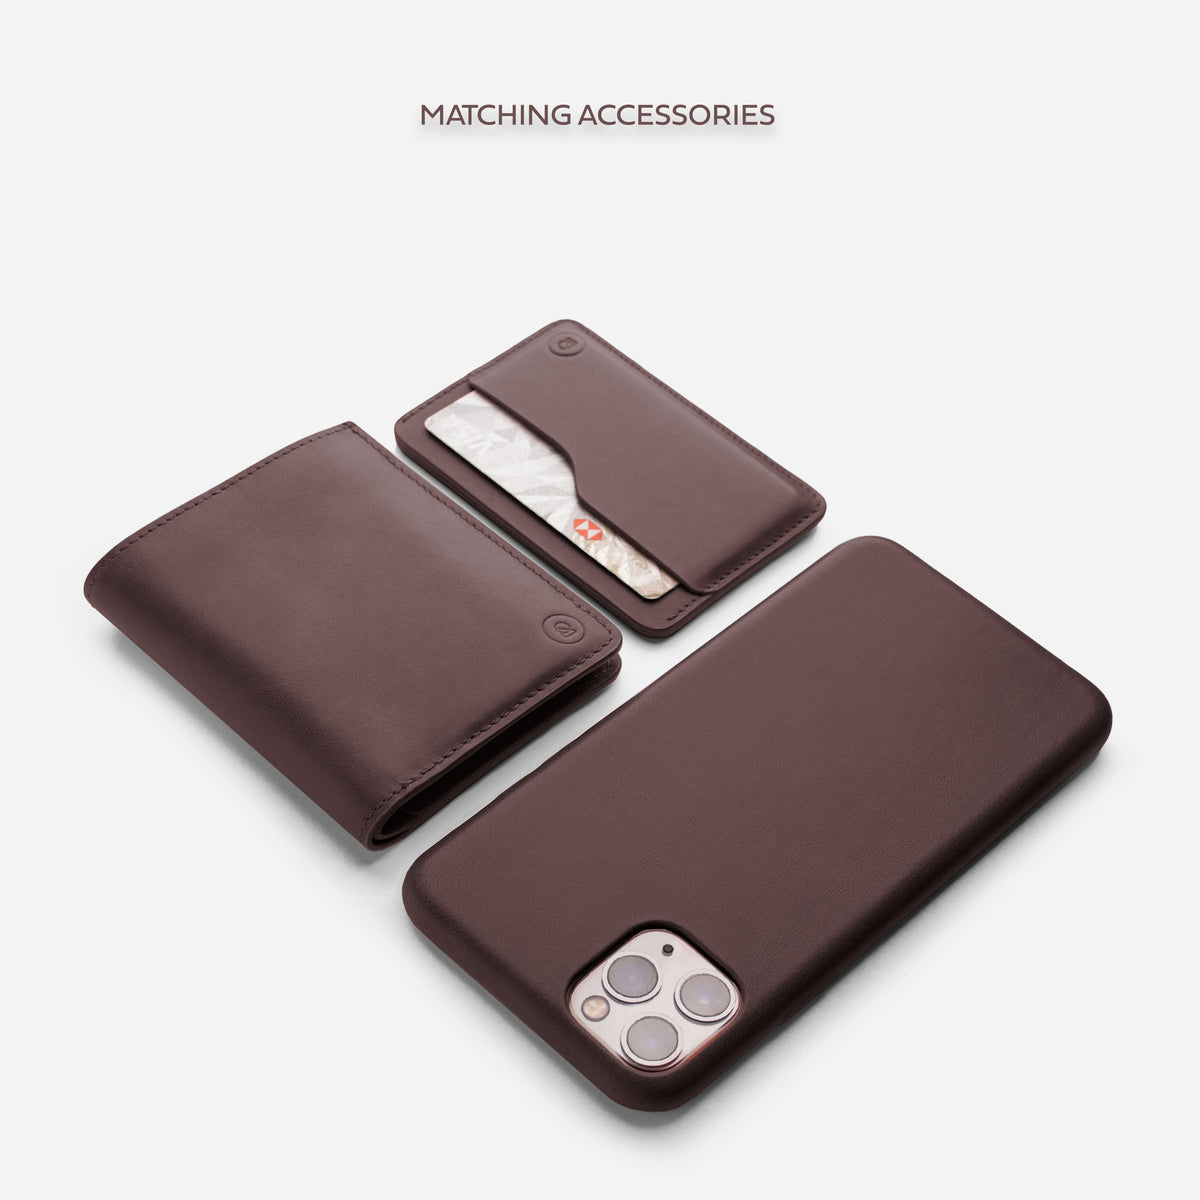 iPhone Leather Shell Case - Deep Brown - RYAN London